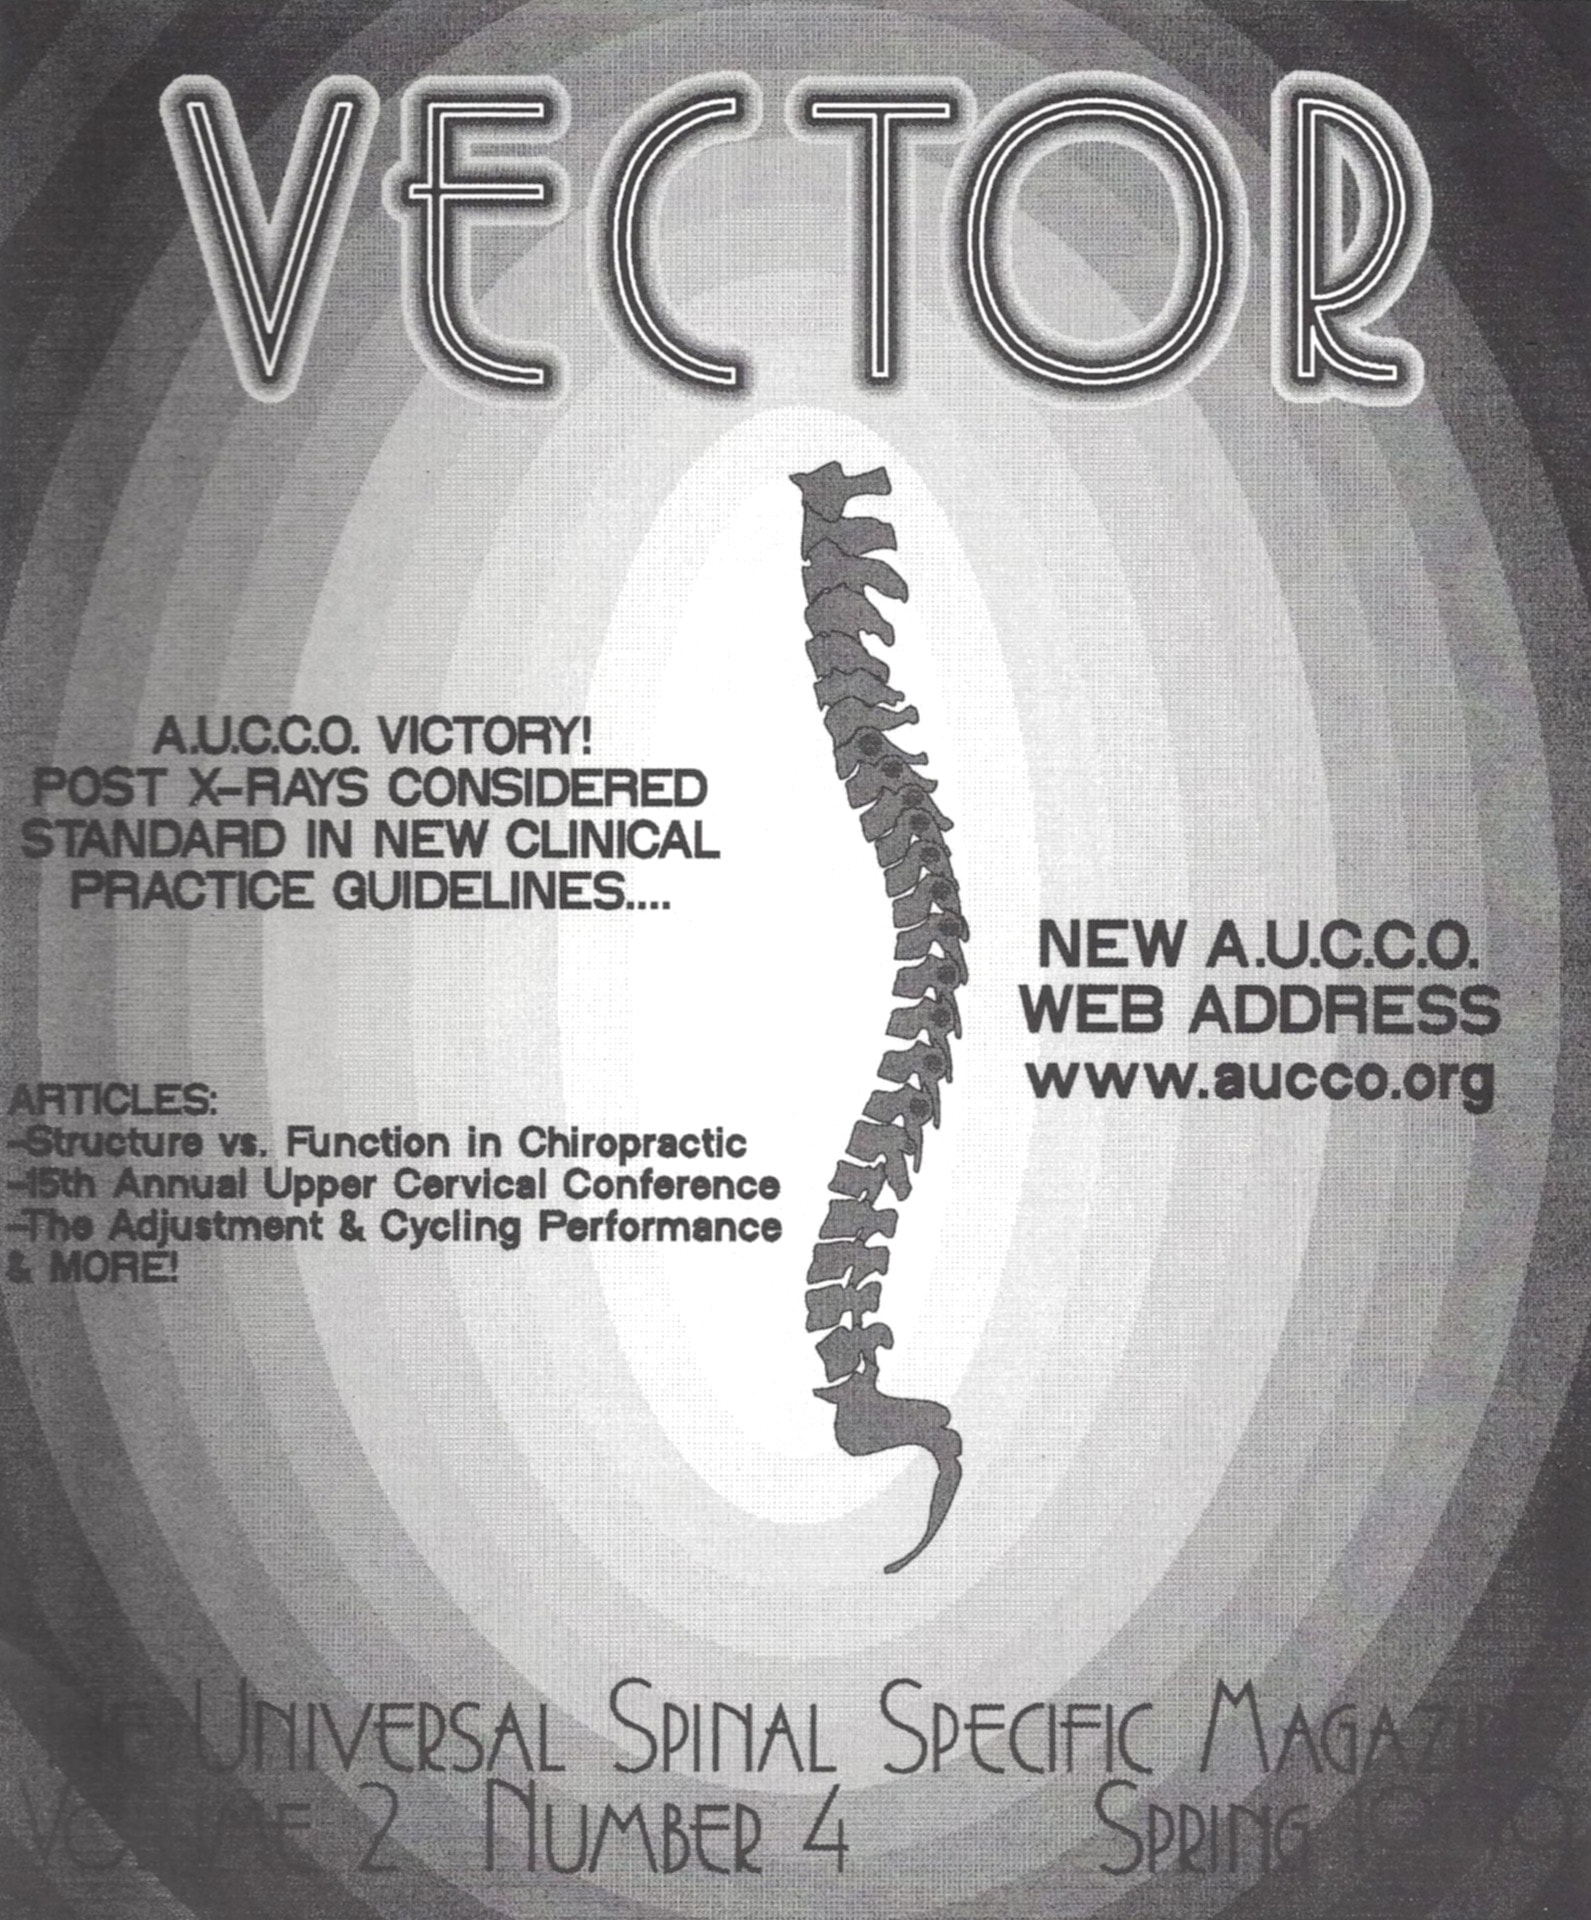 Vector The Universal Spinal Specific Magazine Volume 2 Number 4 Spring 1999